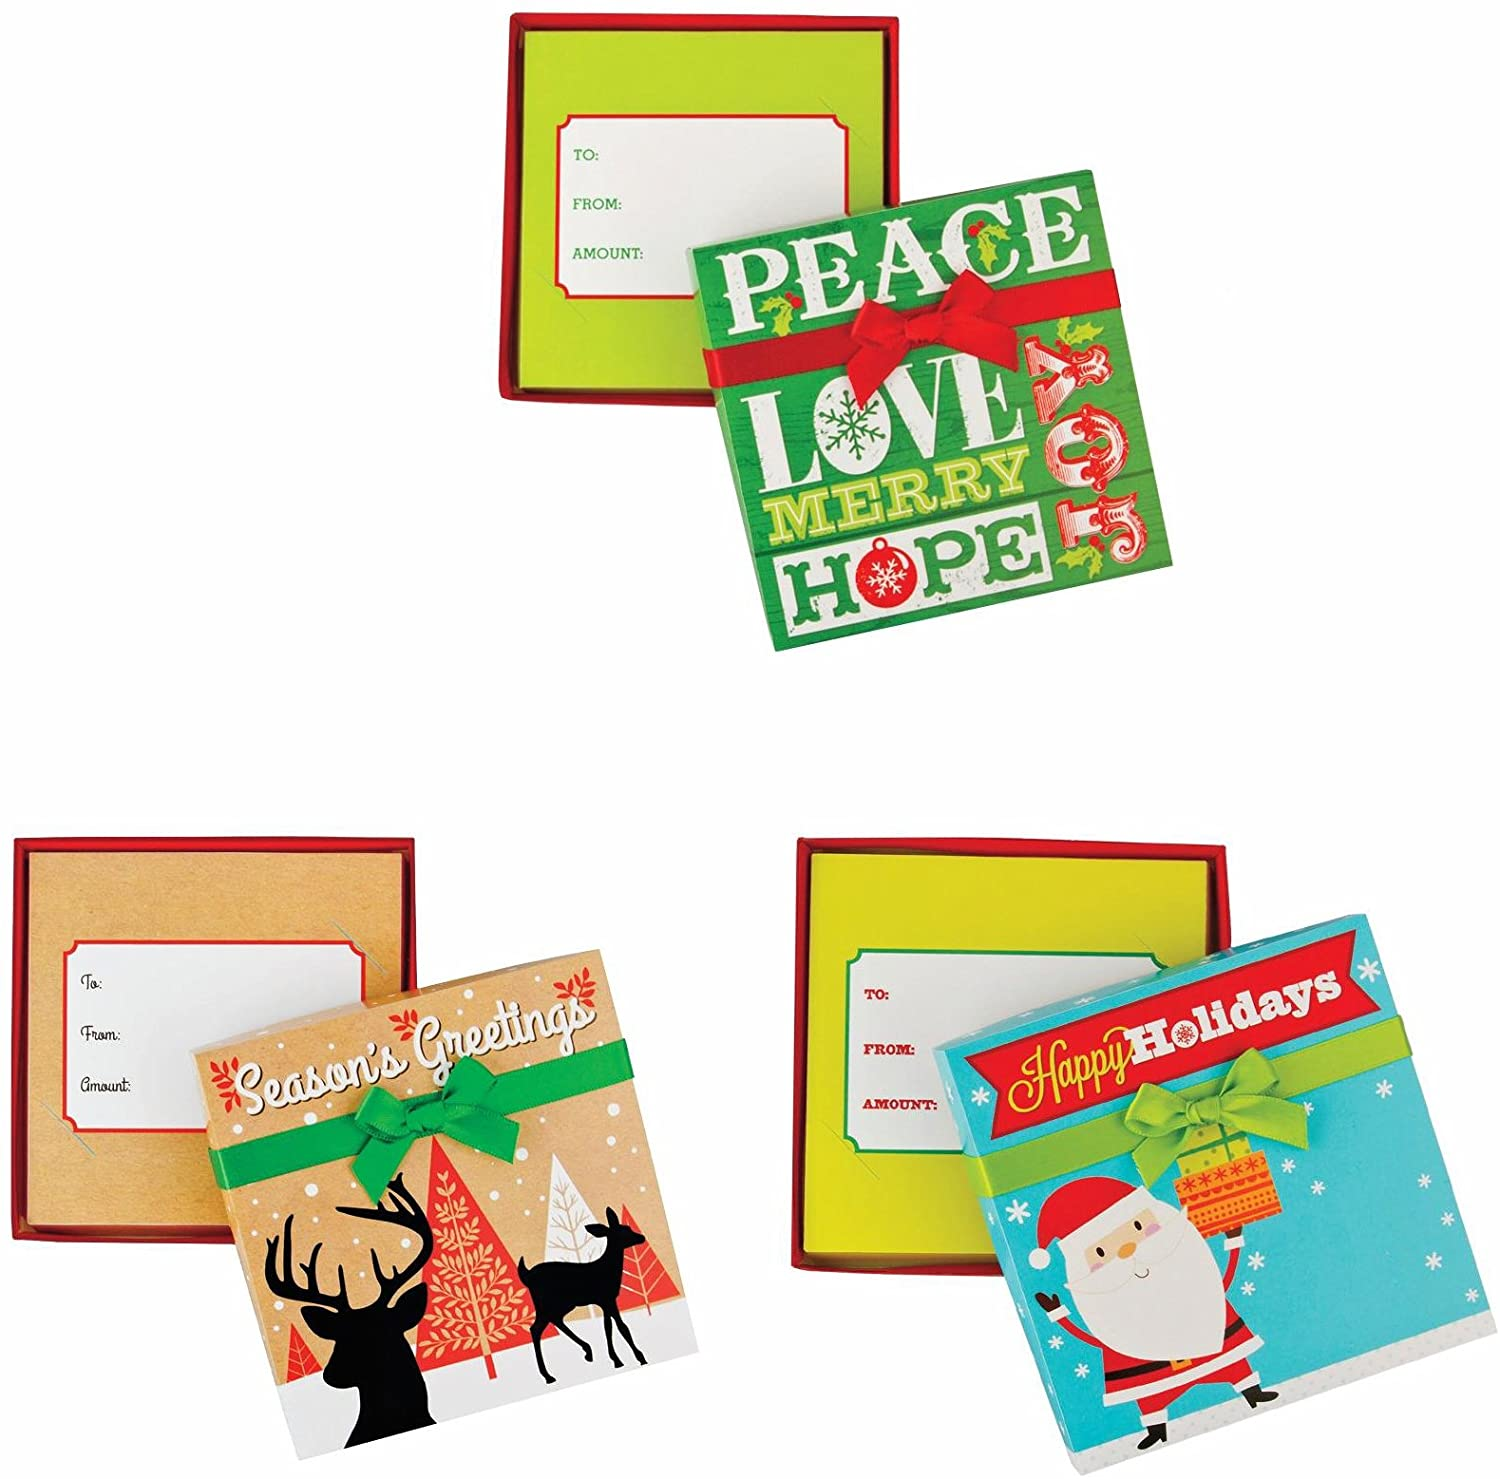 Pack of 3 Christmas Gift Card Holder Box with Decorative Ribbon for Small Gifts or Gift Cards with Santa, Reindeer, Xmas Tree